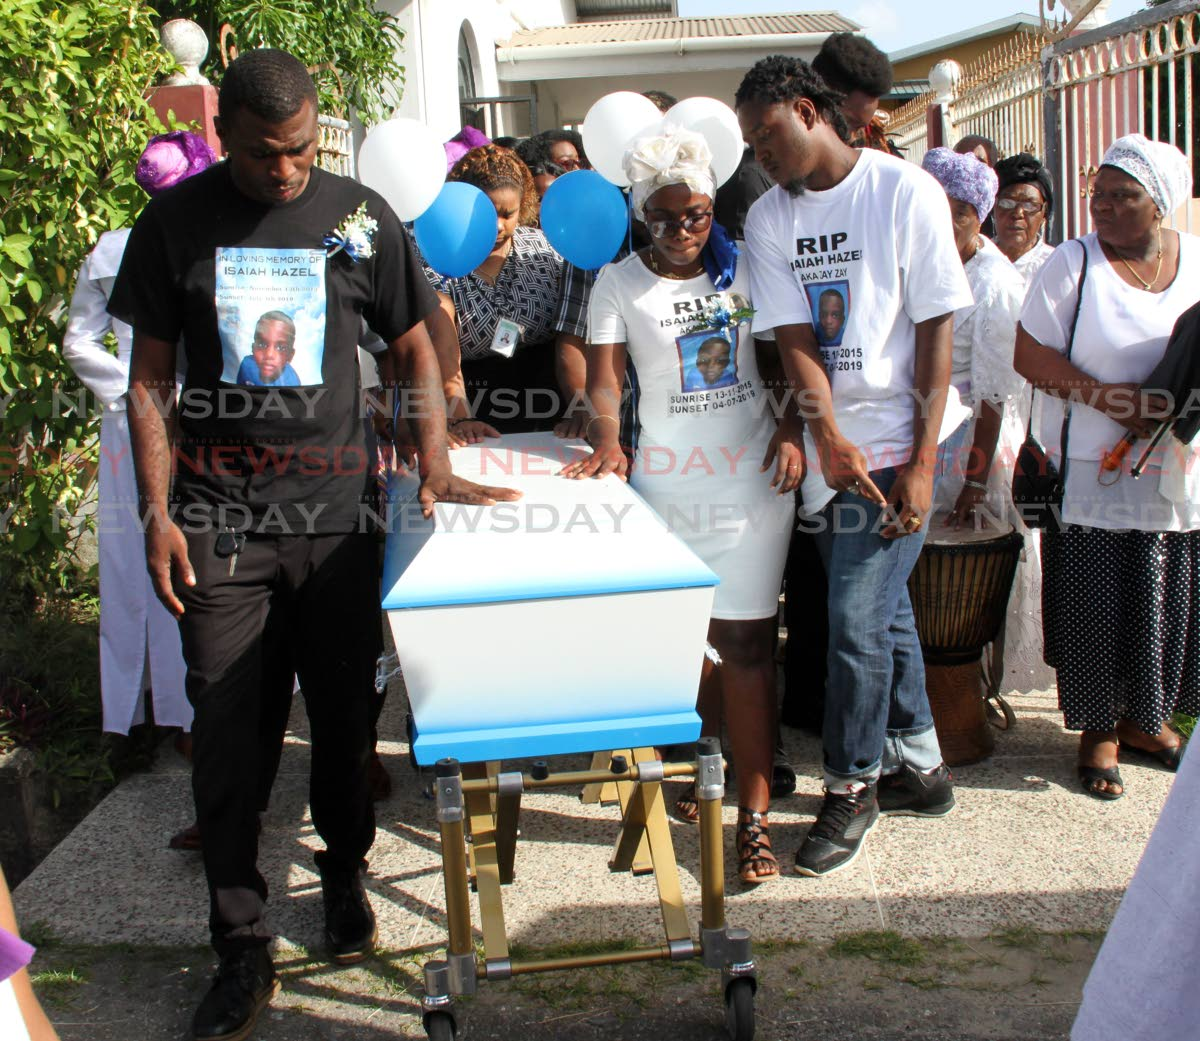 Kendel Hazel, left, and Amanda Vincent, parents of Isaiah Hazel were pall bearers at the funeral of their son at Mt. Moriah Spiritual Baptist Church, Yallery Street, Couva, on Wednesday. PHOTO BY VASHTI SINGH